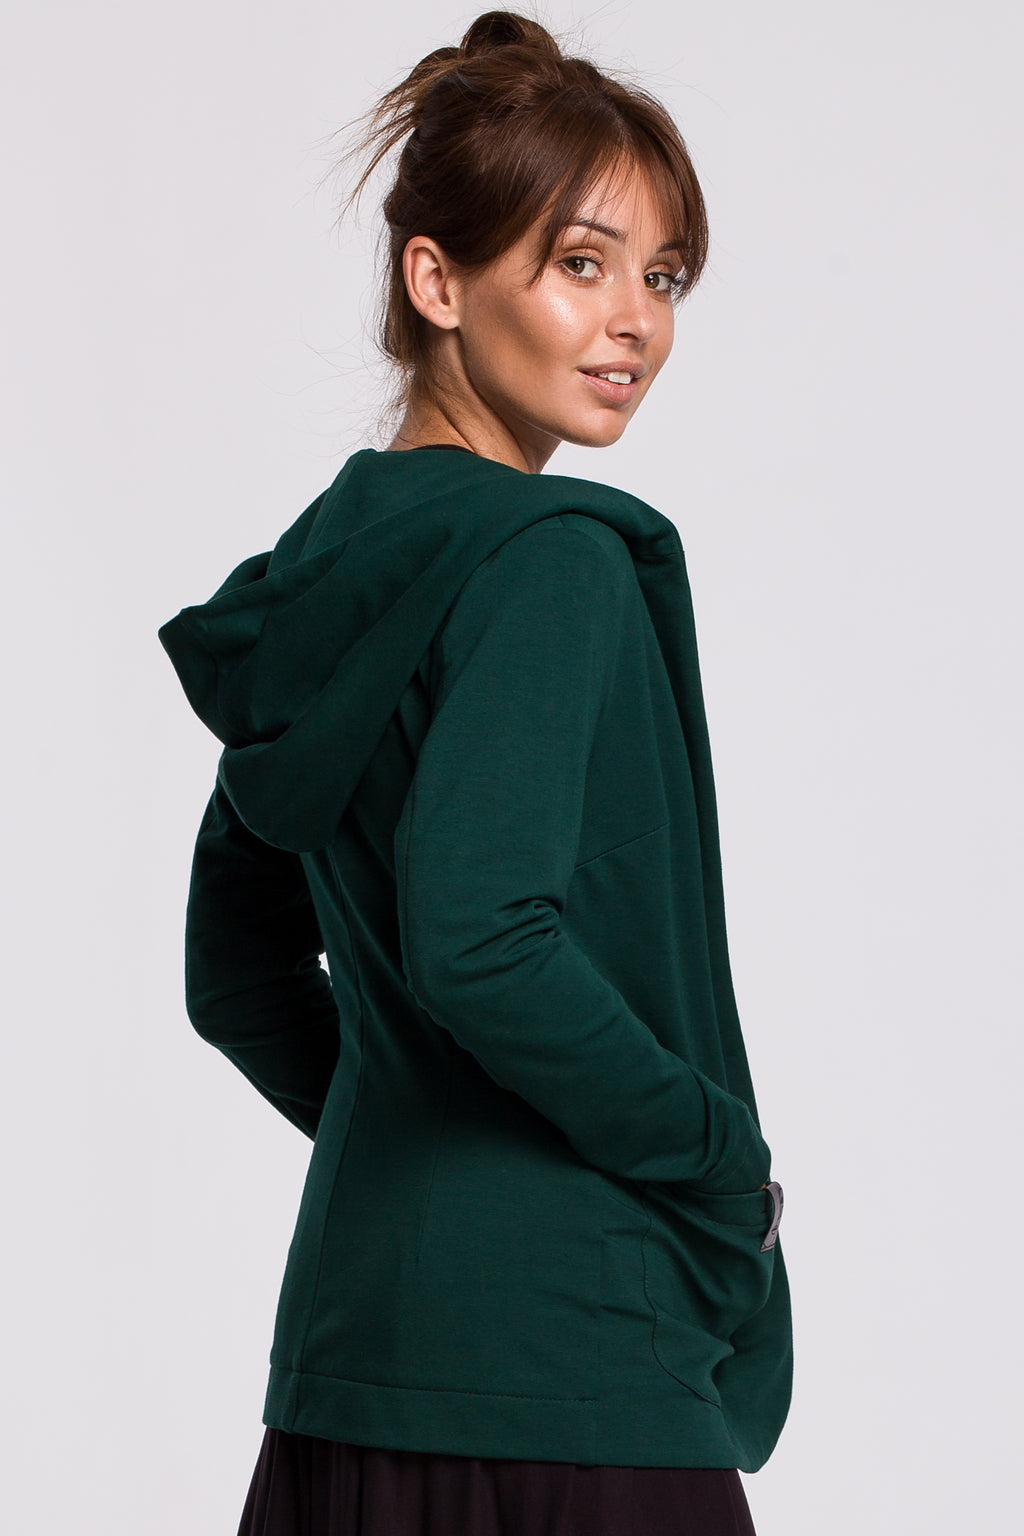 Green Cotton Jacket With A Hood - So Chic Boutique